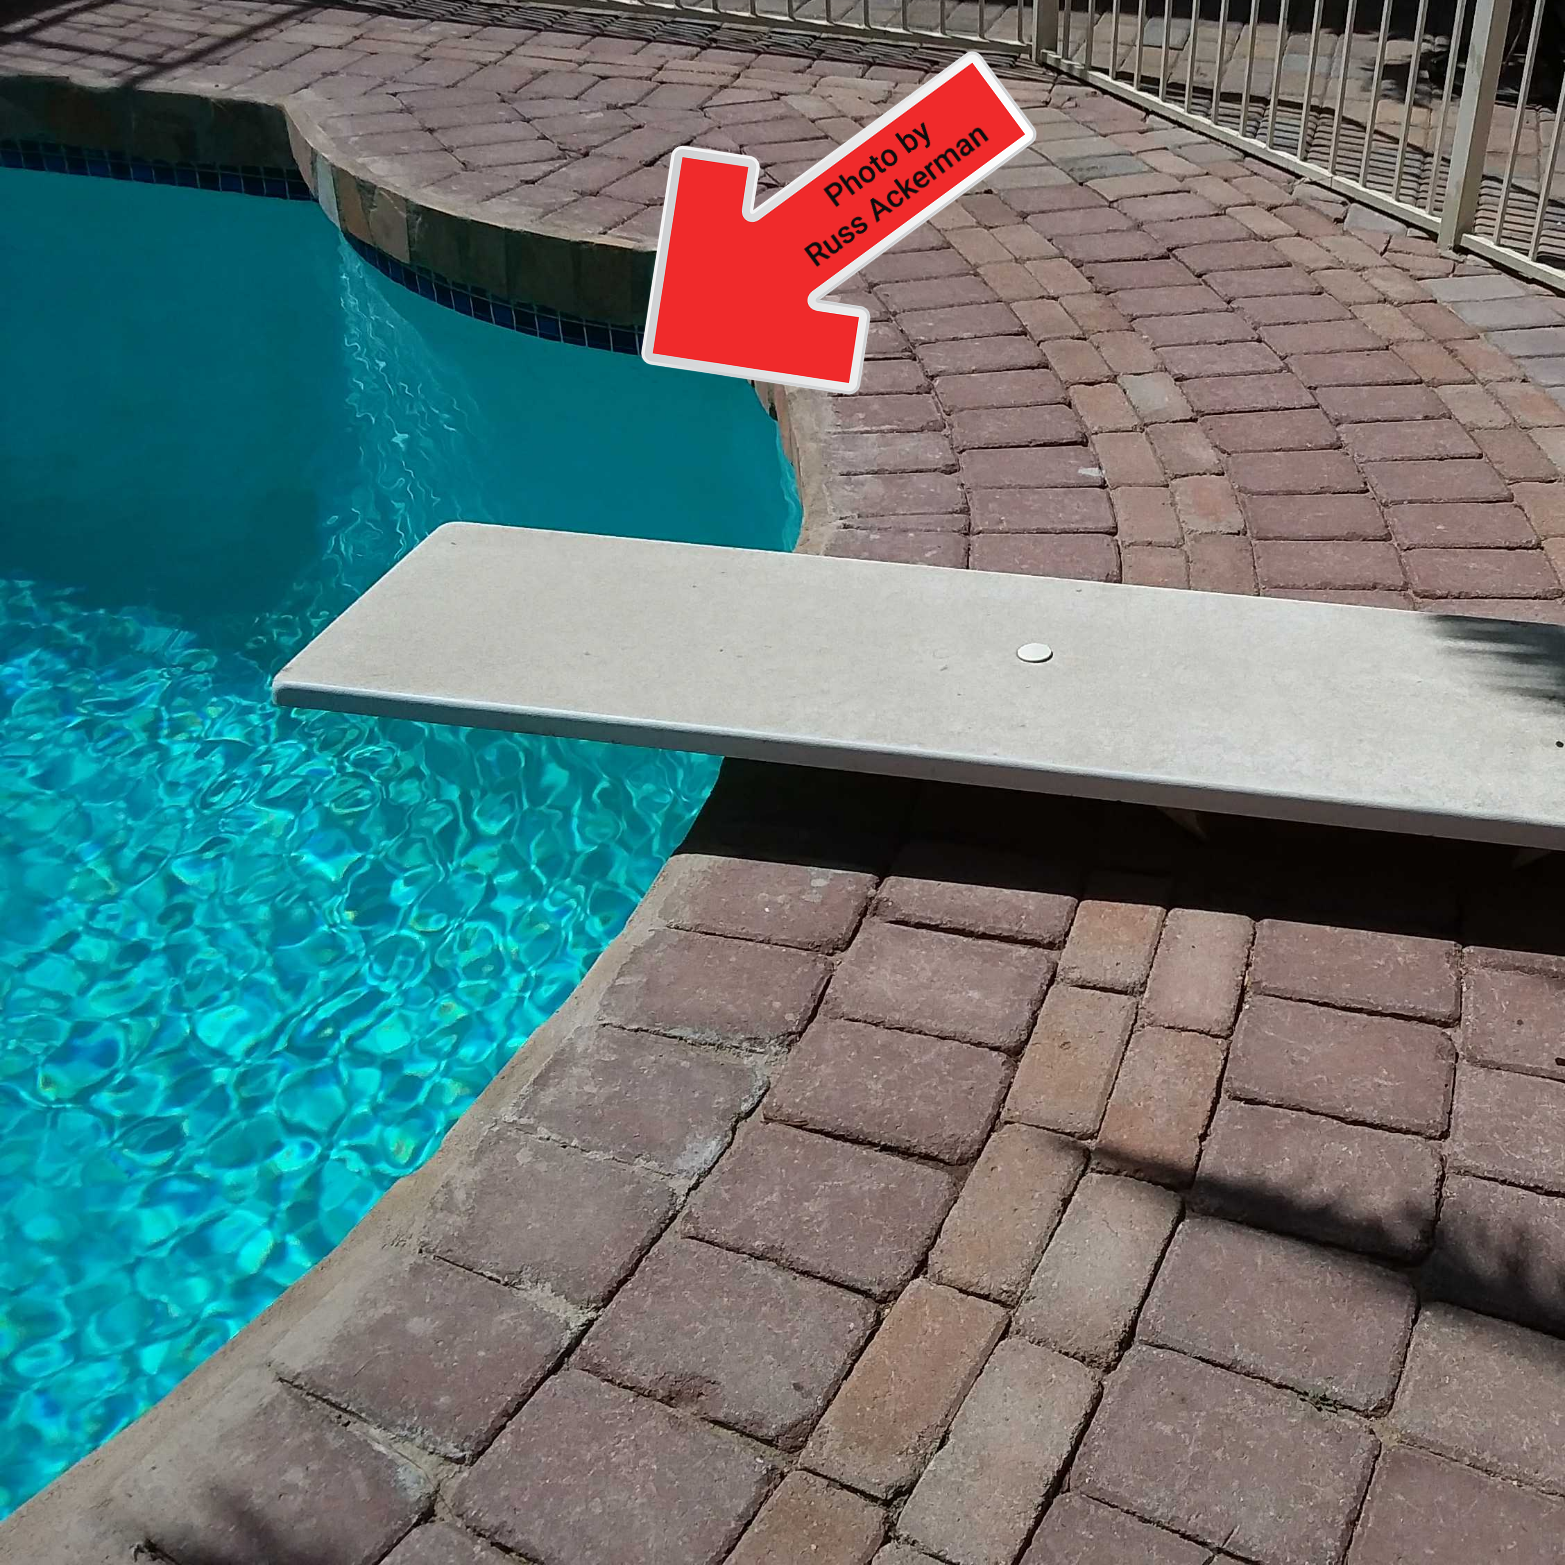 A ladder, handrail and light are highly recommended at the deep end of diving pools, to create proper egress.